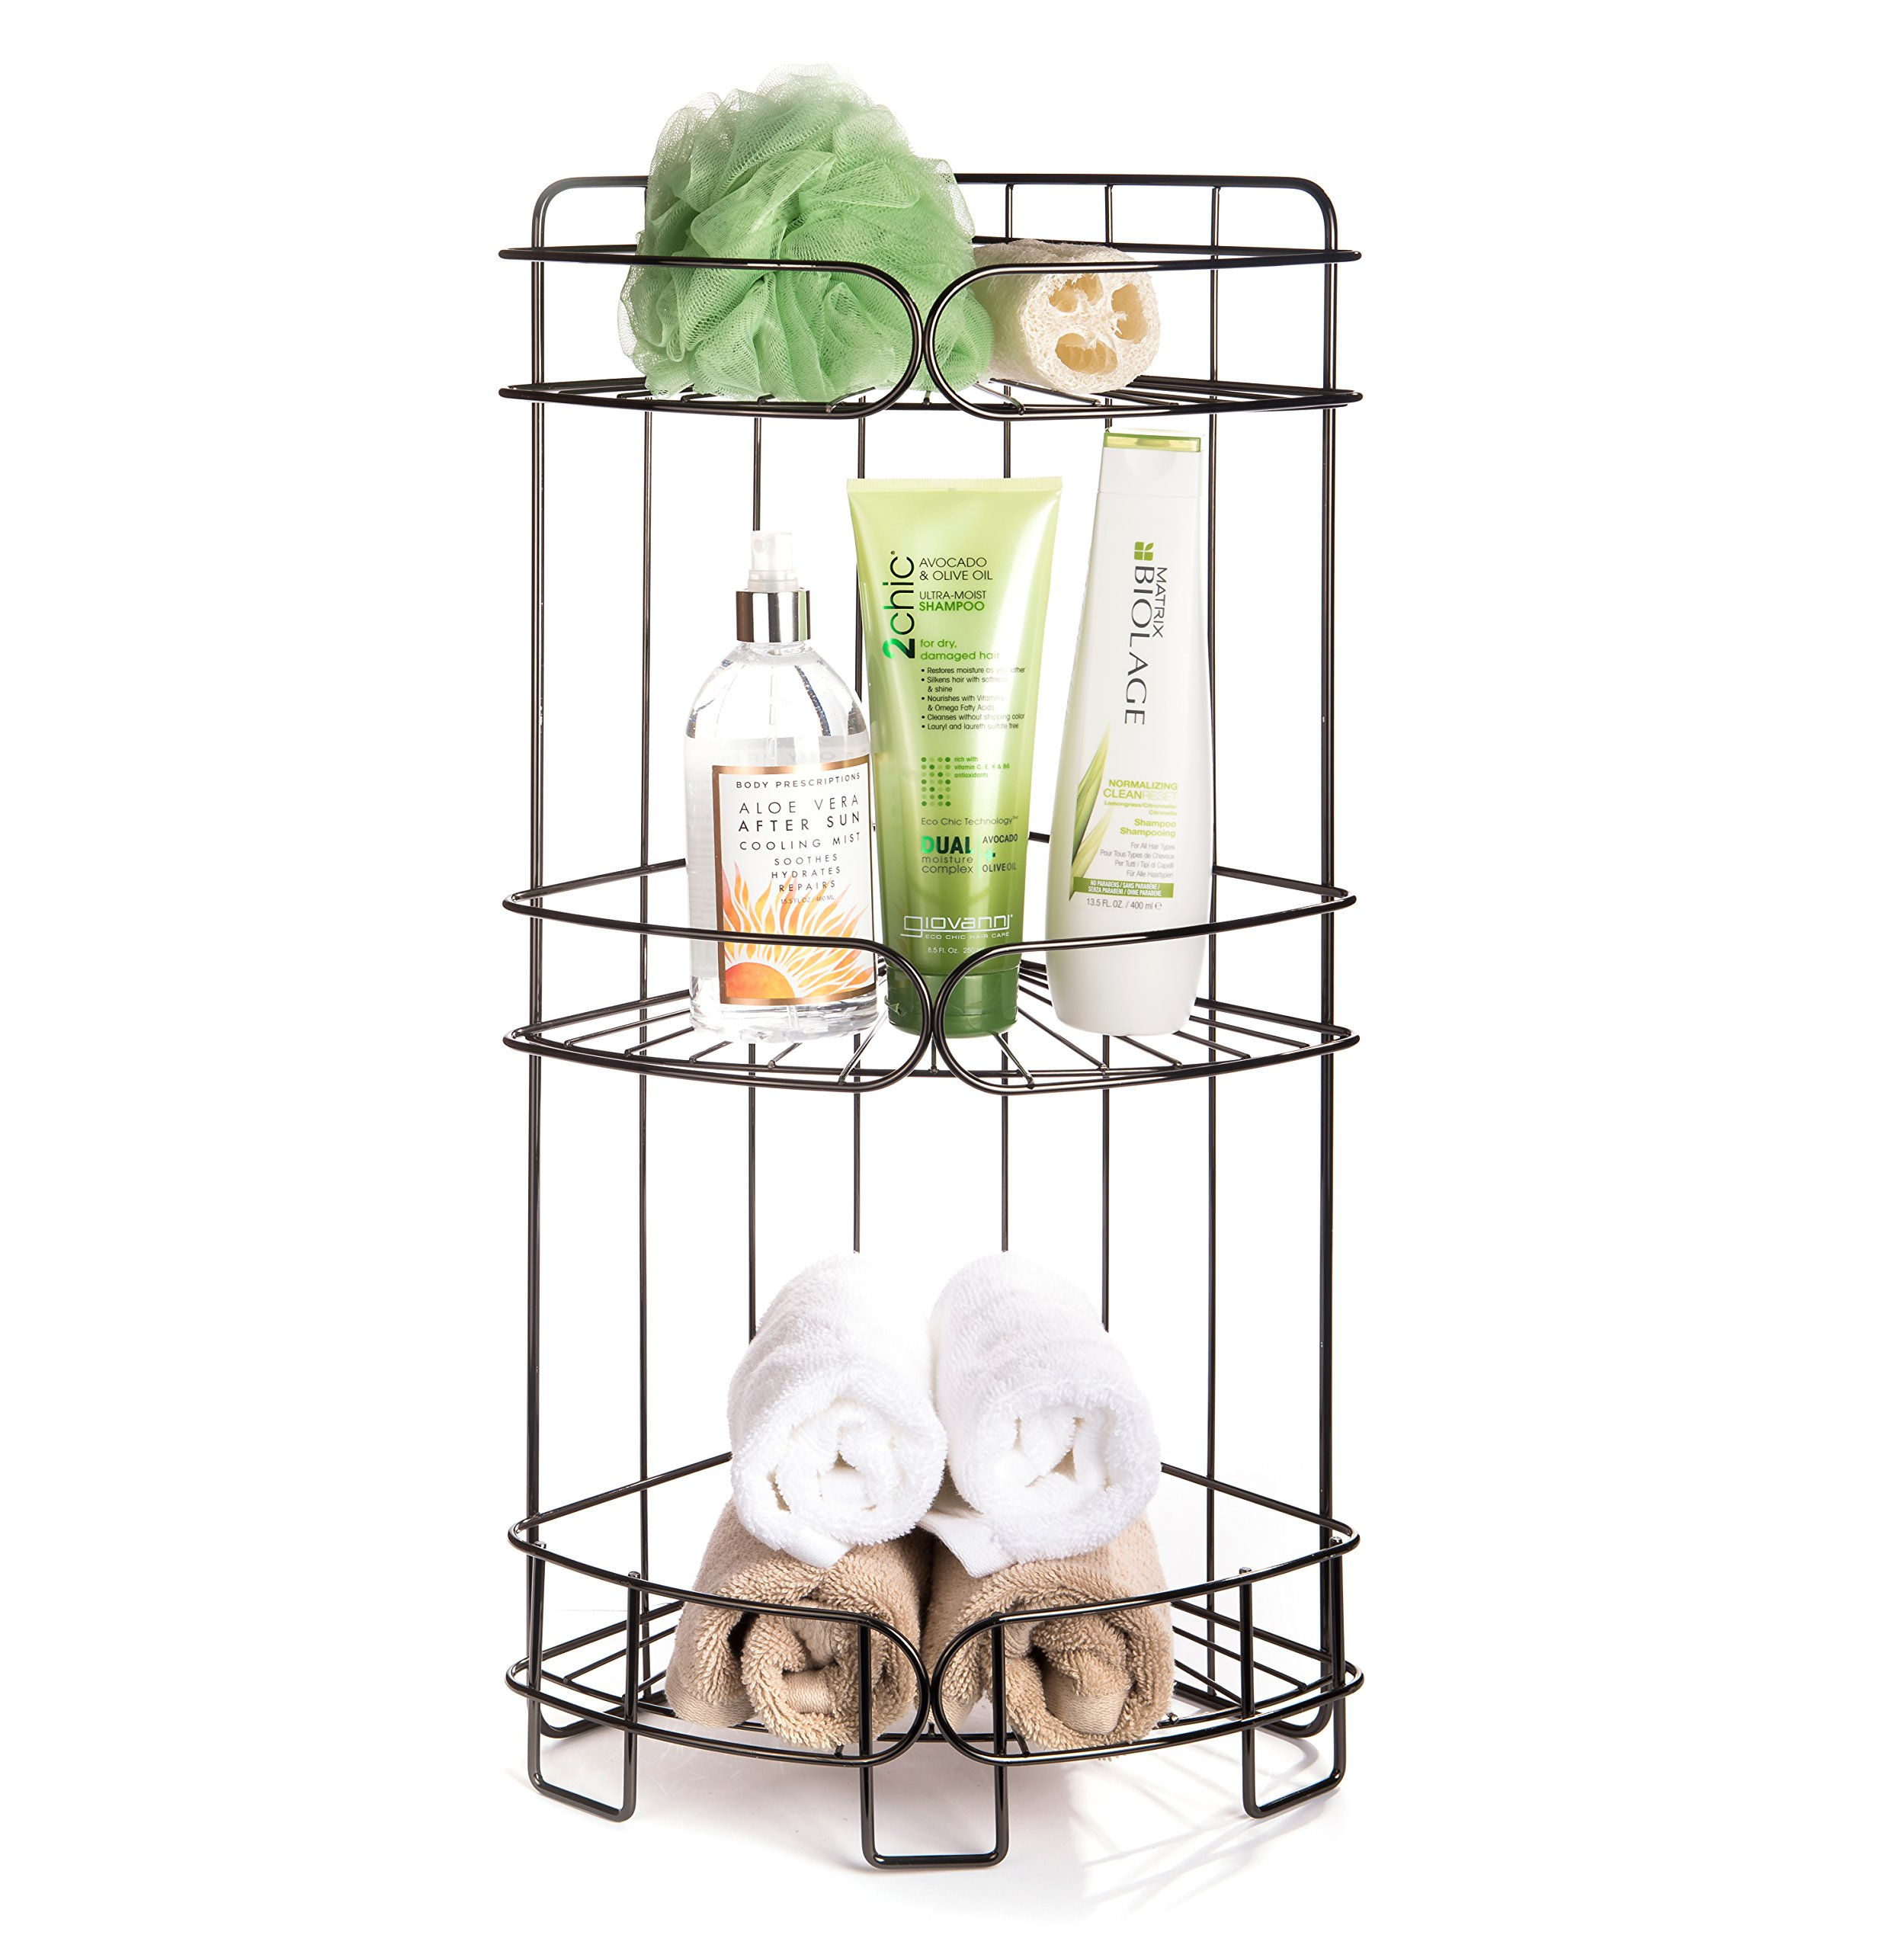 AMG and Enchante Accessories Free Standing Bathroom Spa Tower Storage Caddy, FC100004 BKN, Black Nickel